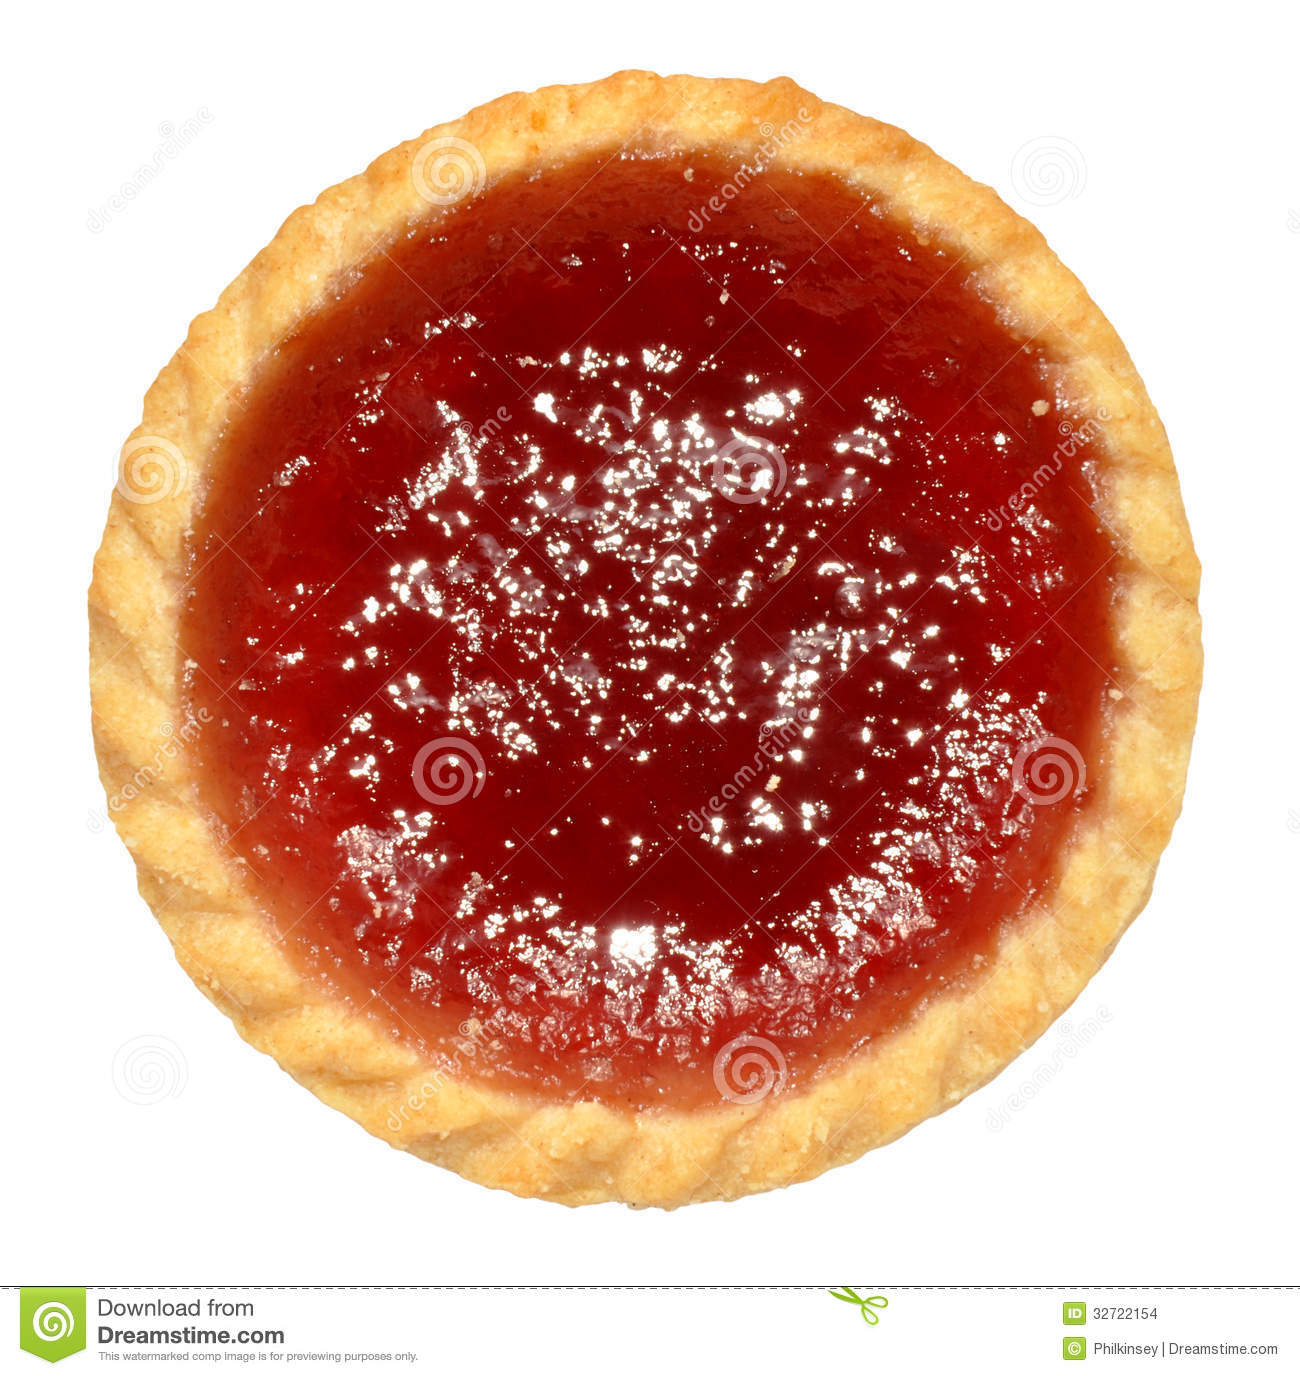 single raspberry jam filled tart isolated on a white background.